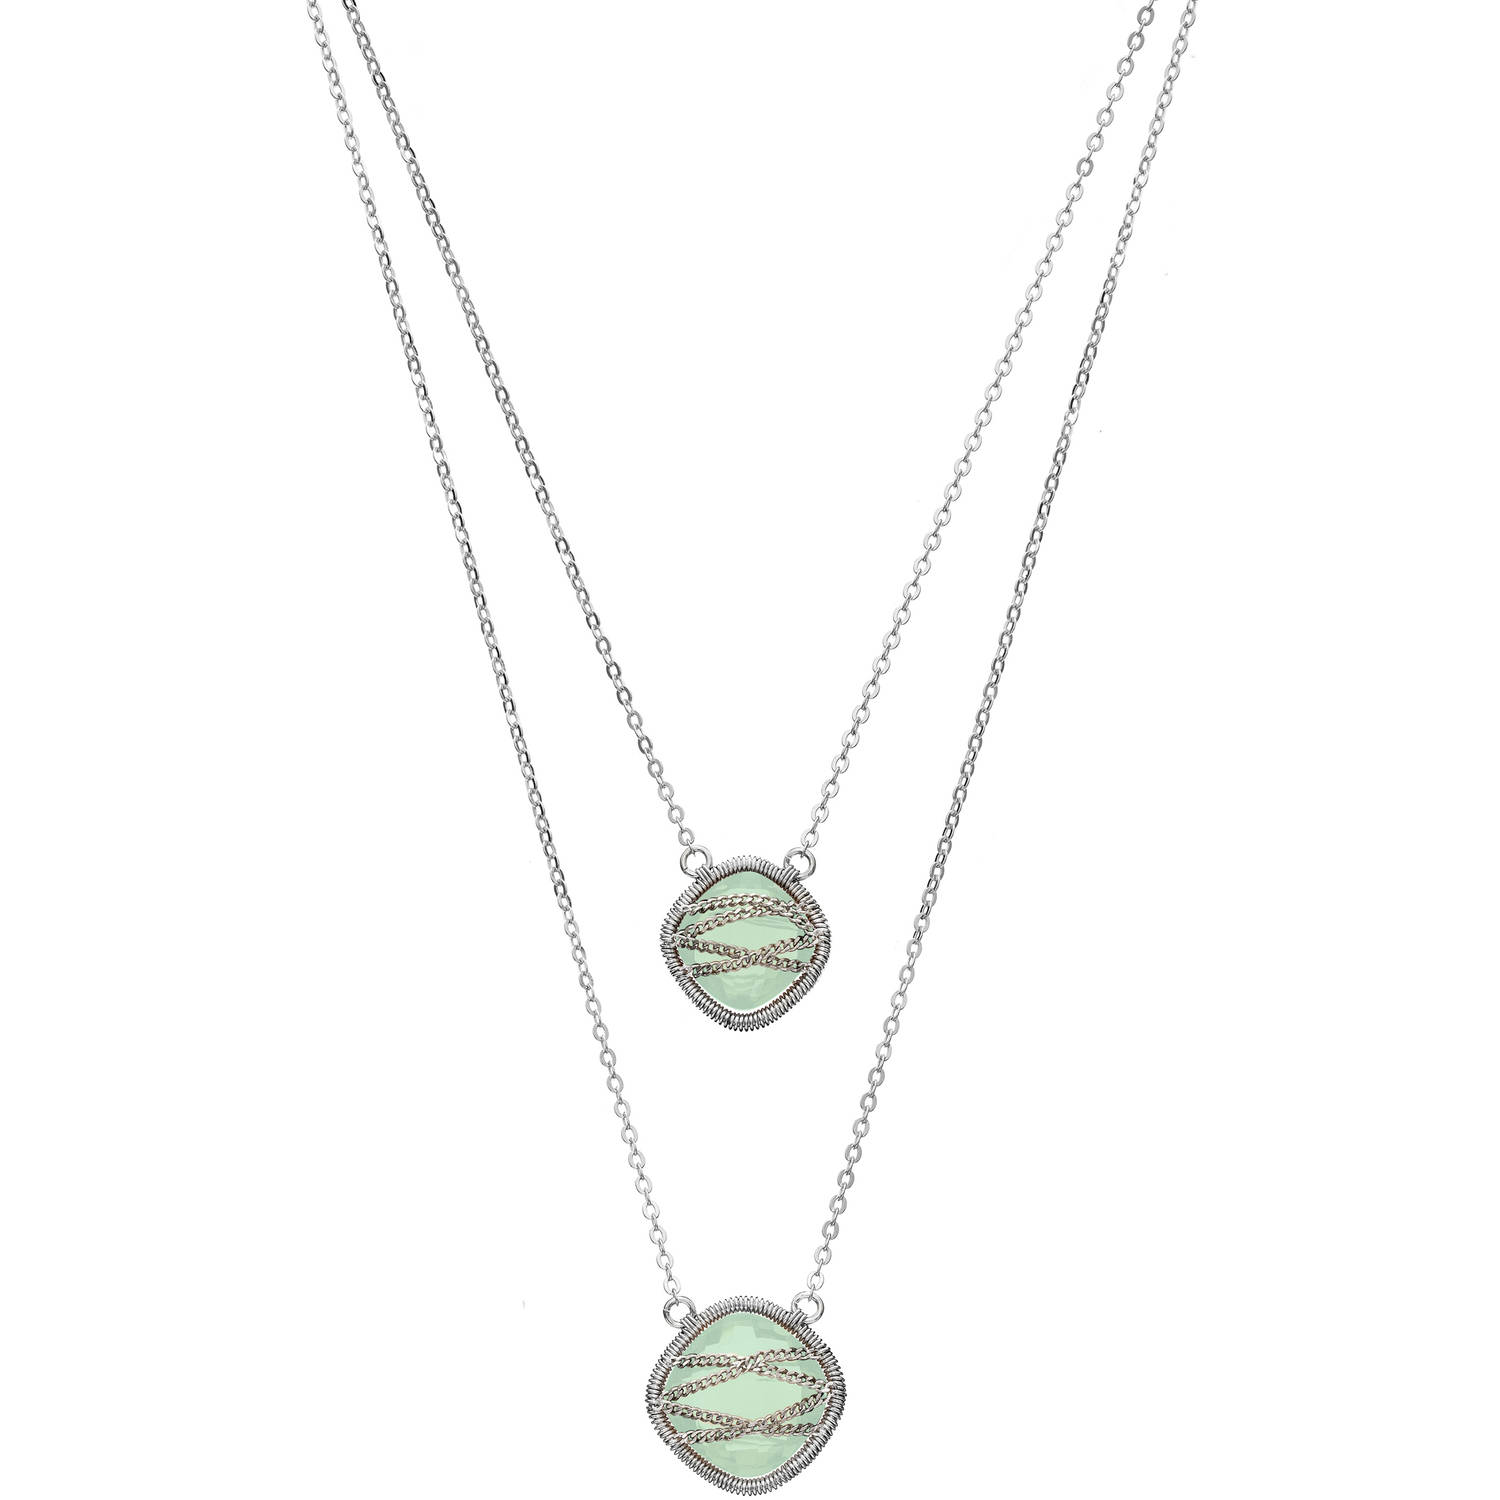 5th & Main Rose Gold over Sterling Silver Hand-Wrapped Double-Drop Squared Chalcedony Stone Necklace by Generic